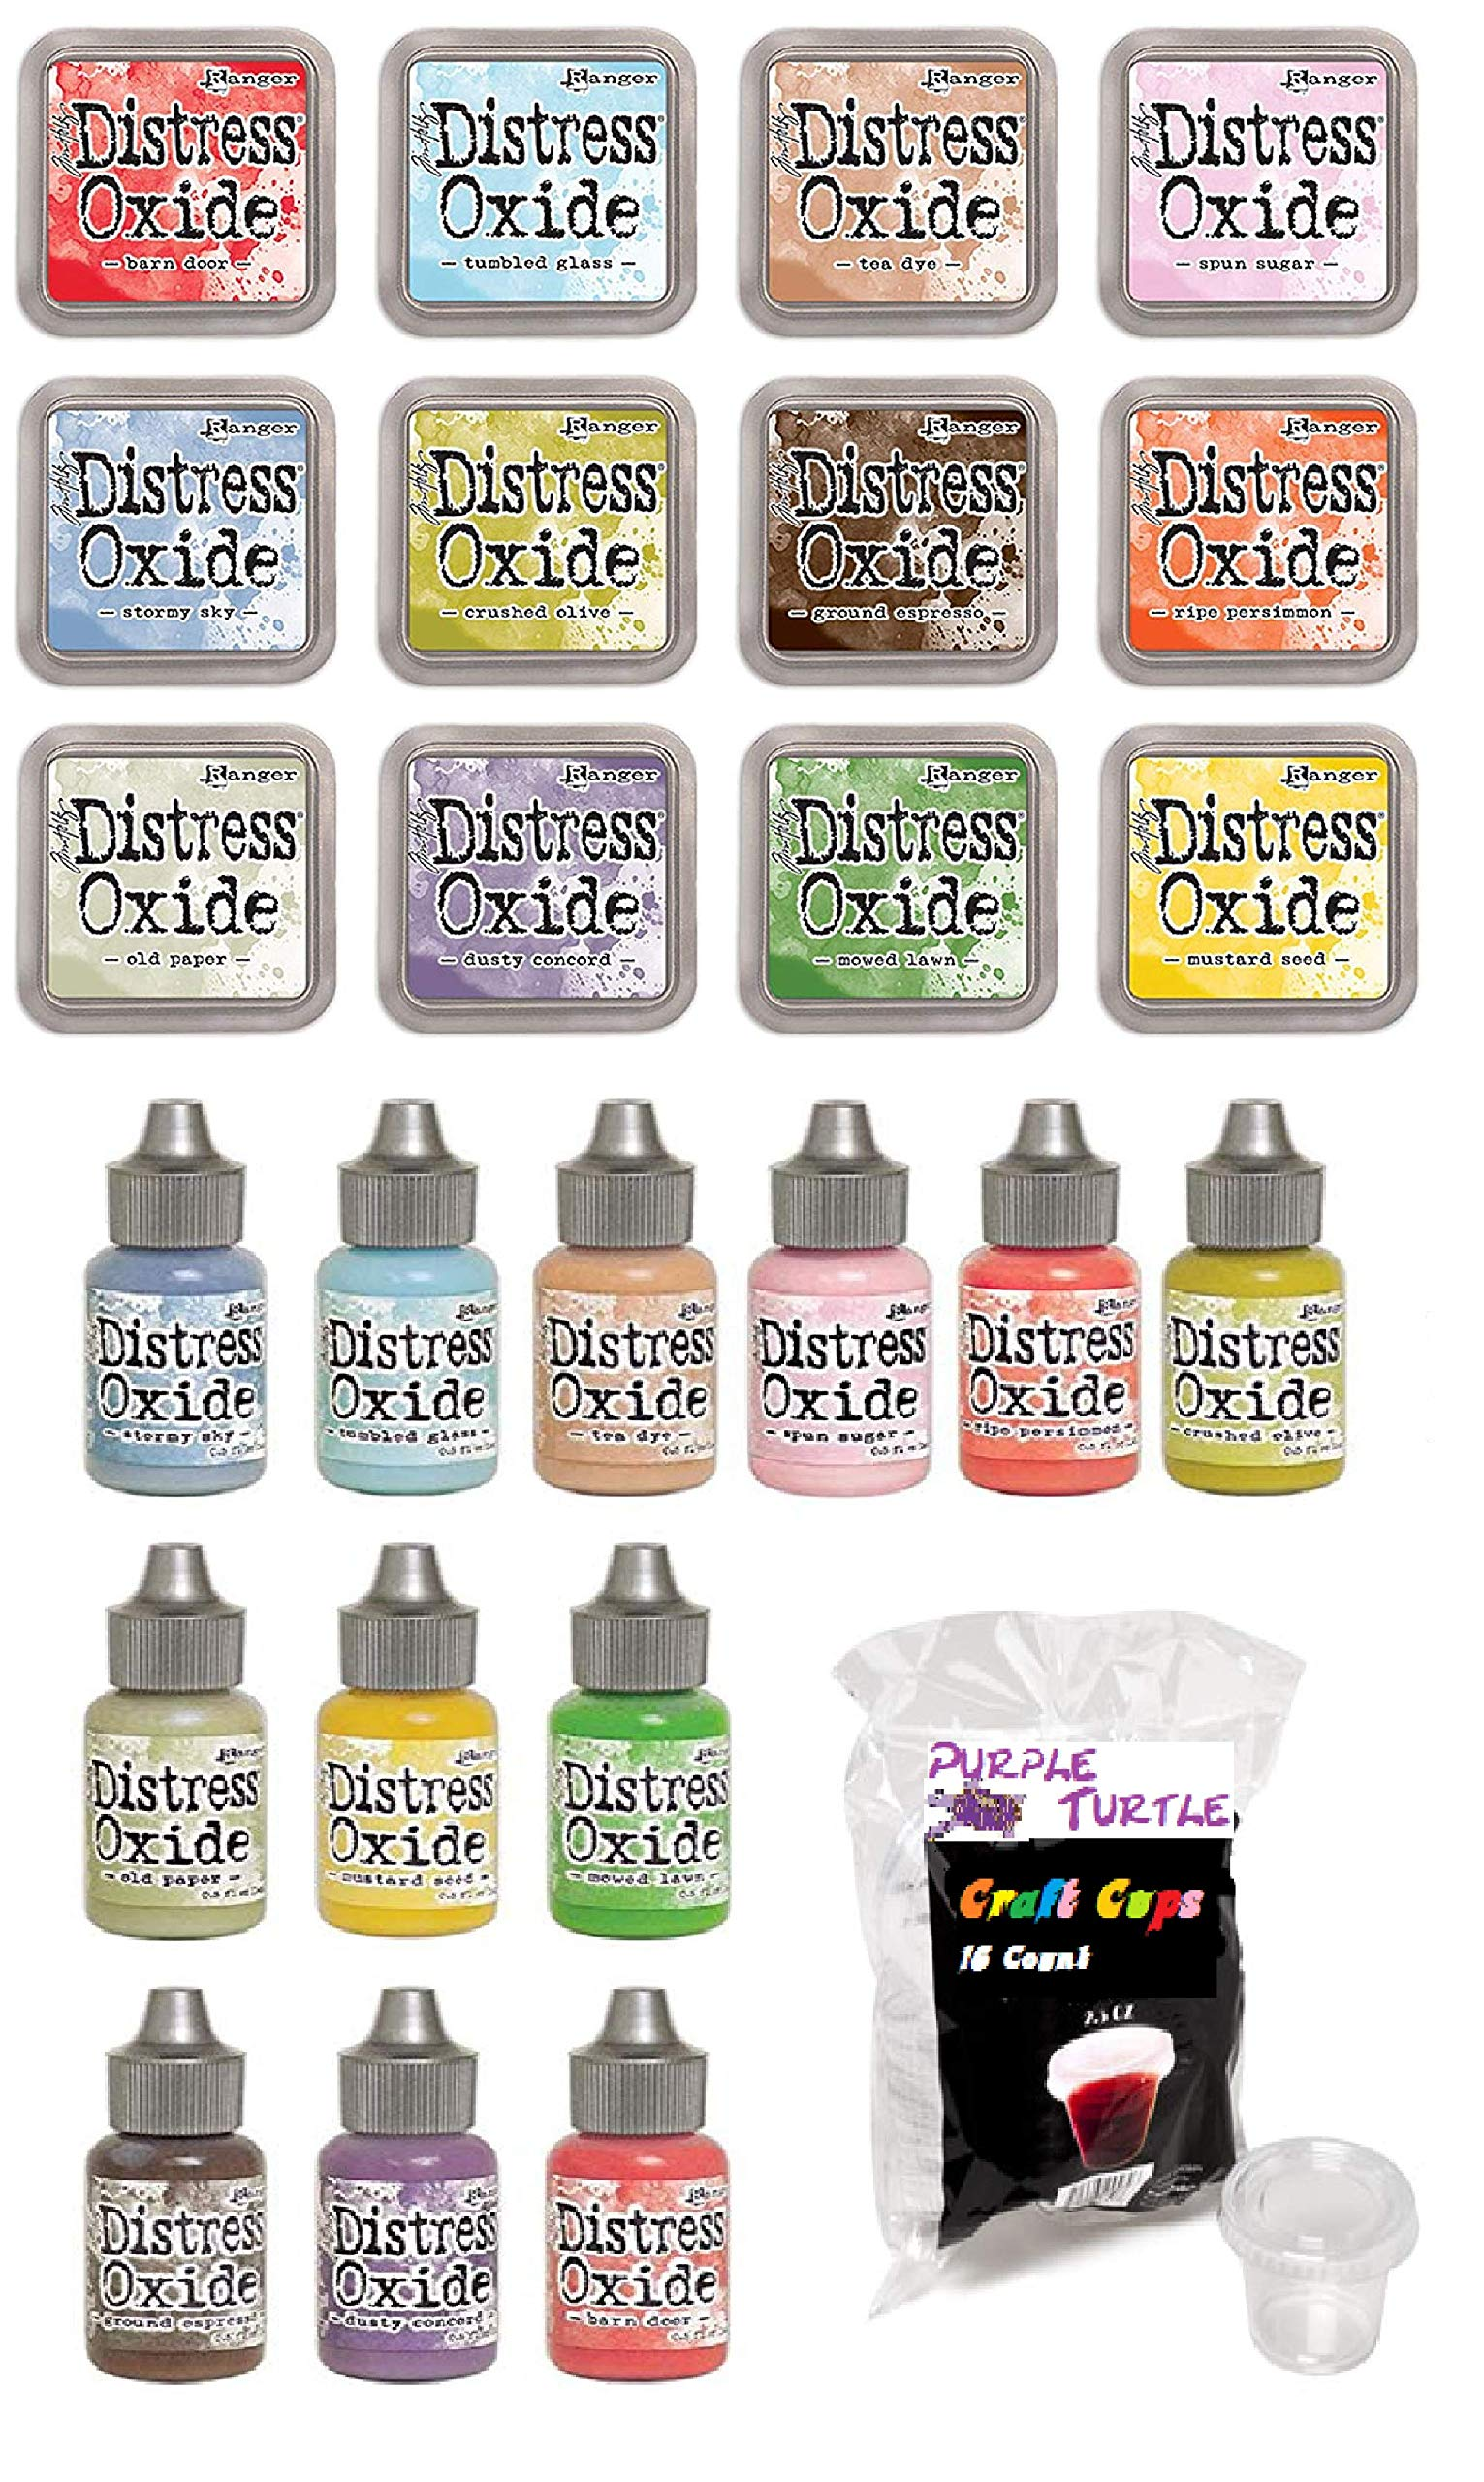 Ranger Tim Holtz Distress Oxide Ink Summer 2018-12 Ink Pad,12 Reinker and Purple Turlte Craft Cups Bundle